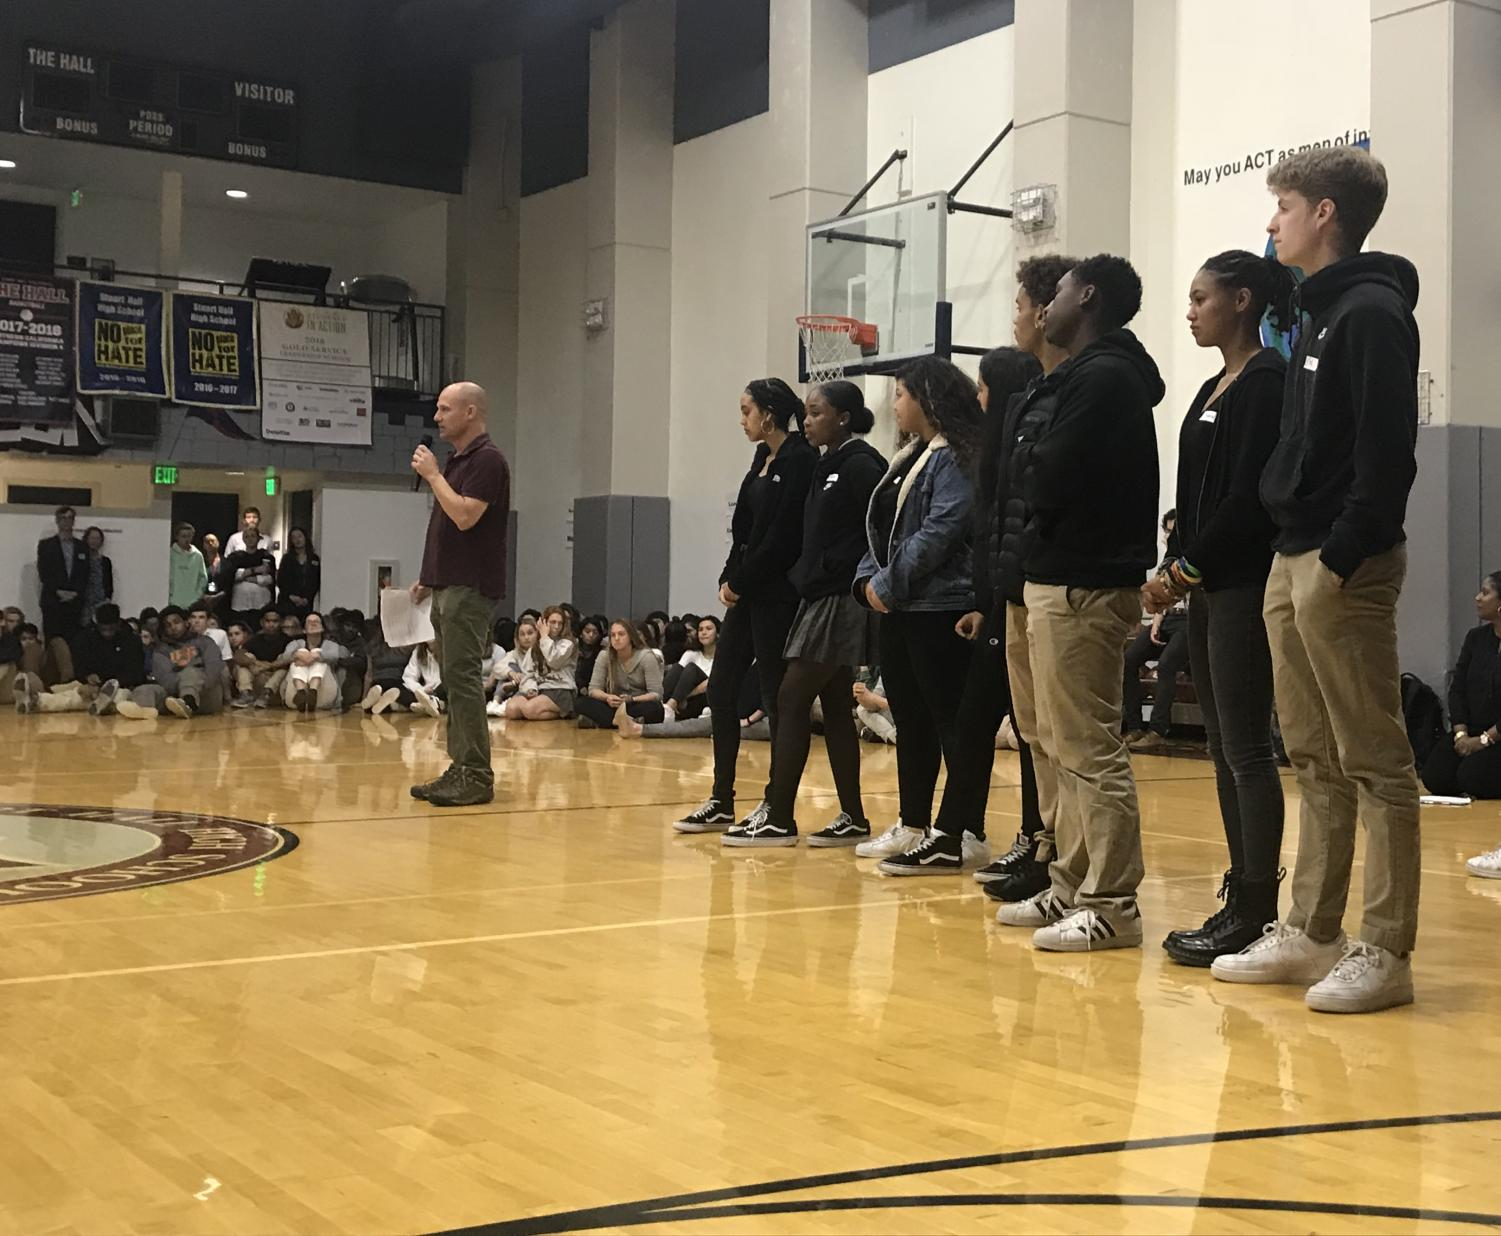 Members of POCSU line up in the Stuart Hall gym to present personal stories. Guest speaker Ted Saltveit mediated the conversation and asked students questions about their experiences with race.